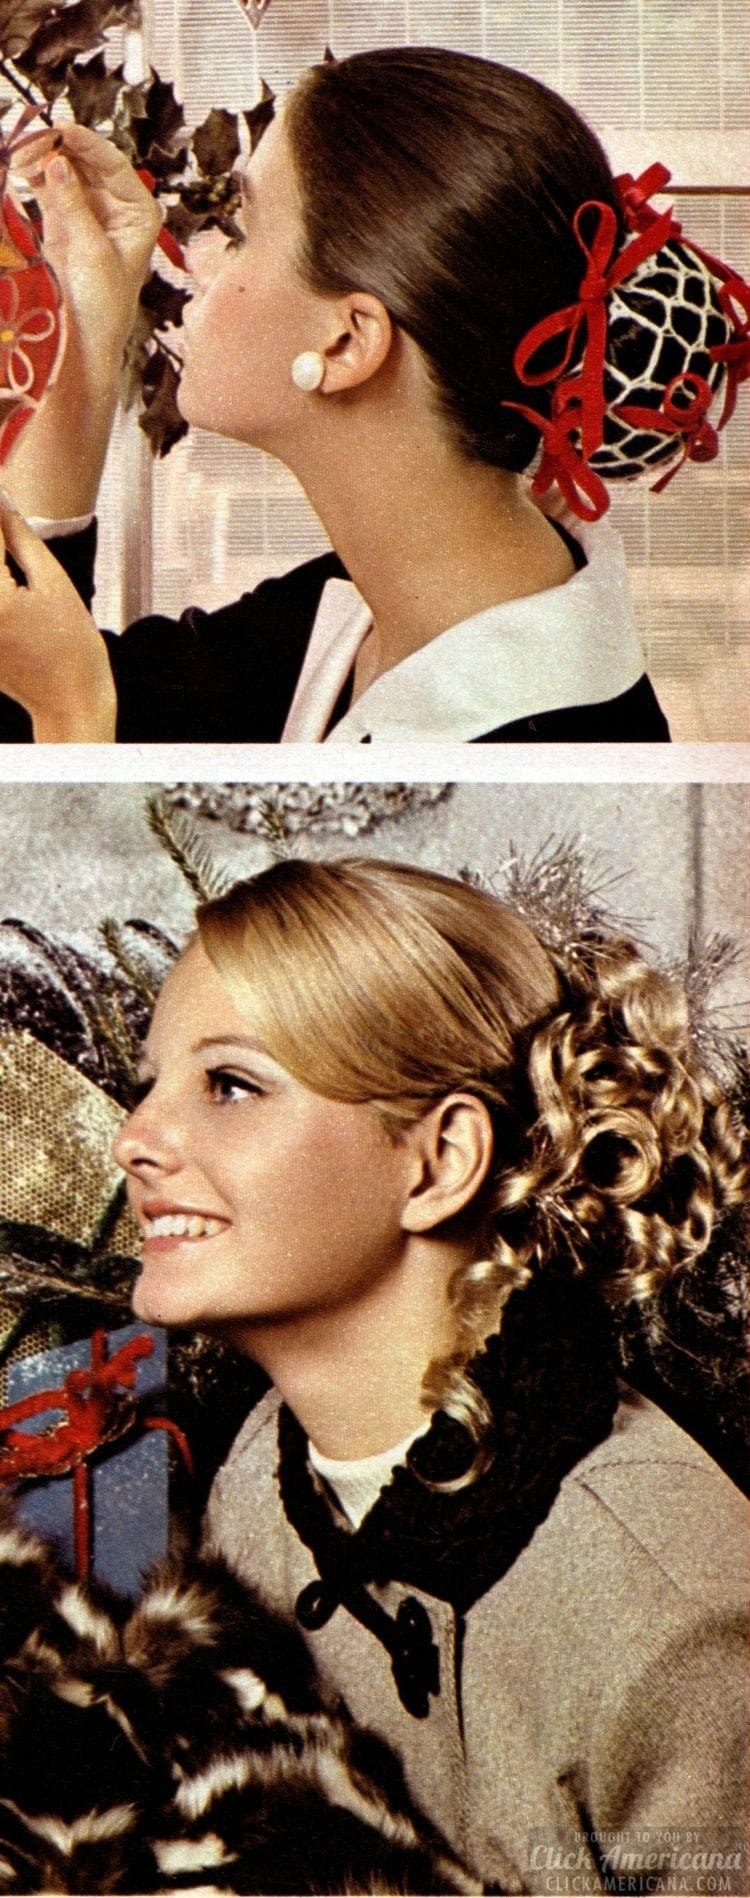 Christmas hairstyles - Fashion from Seventeen - December 1968